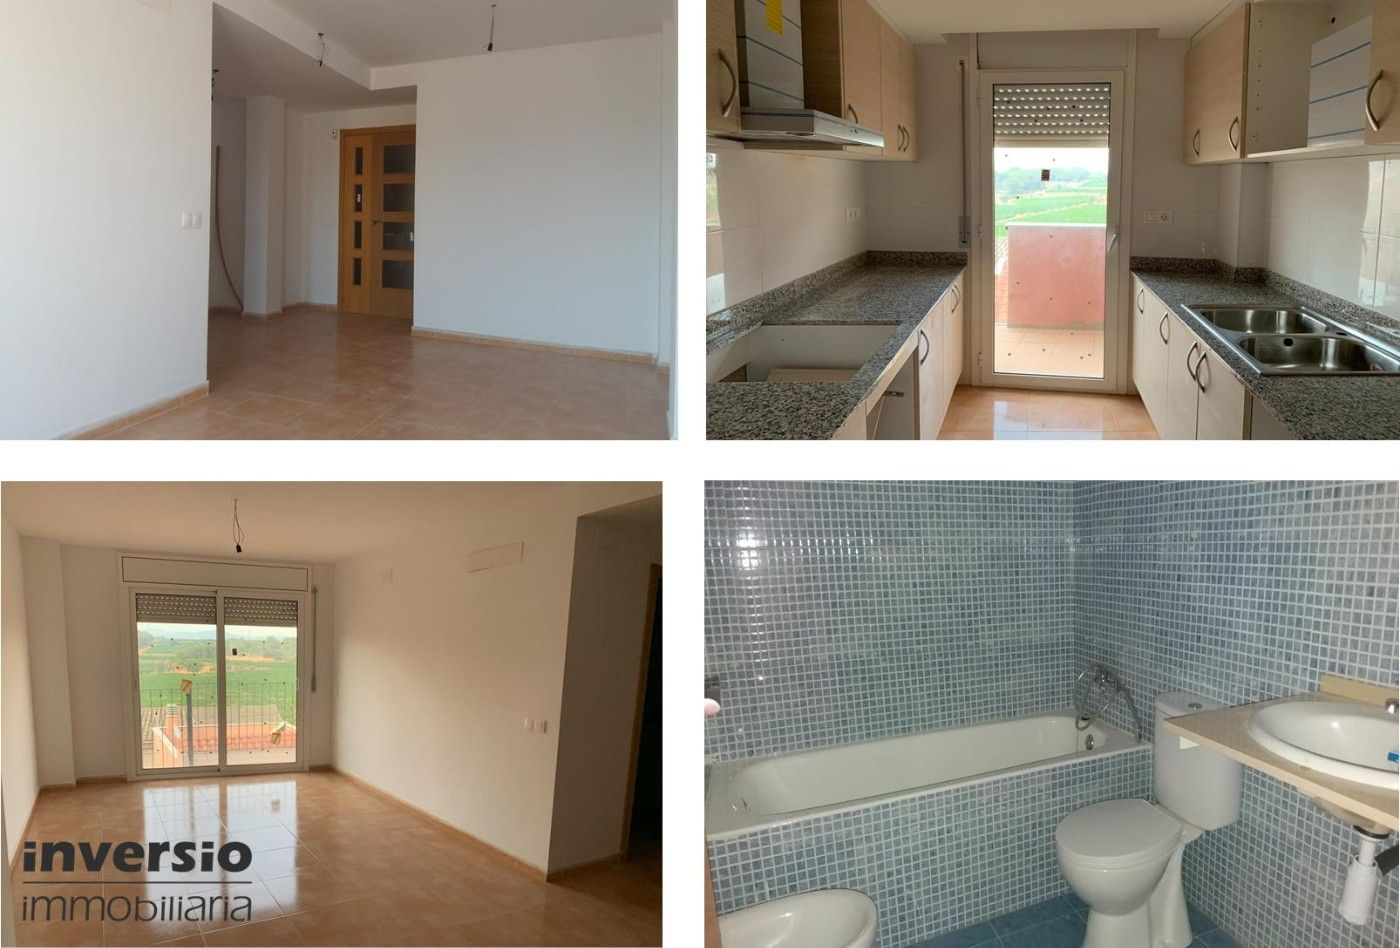 Appartamento in Carrer major, 23. Oportunidad. piso 2 hab.